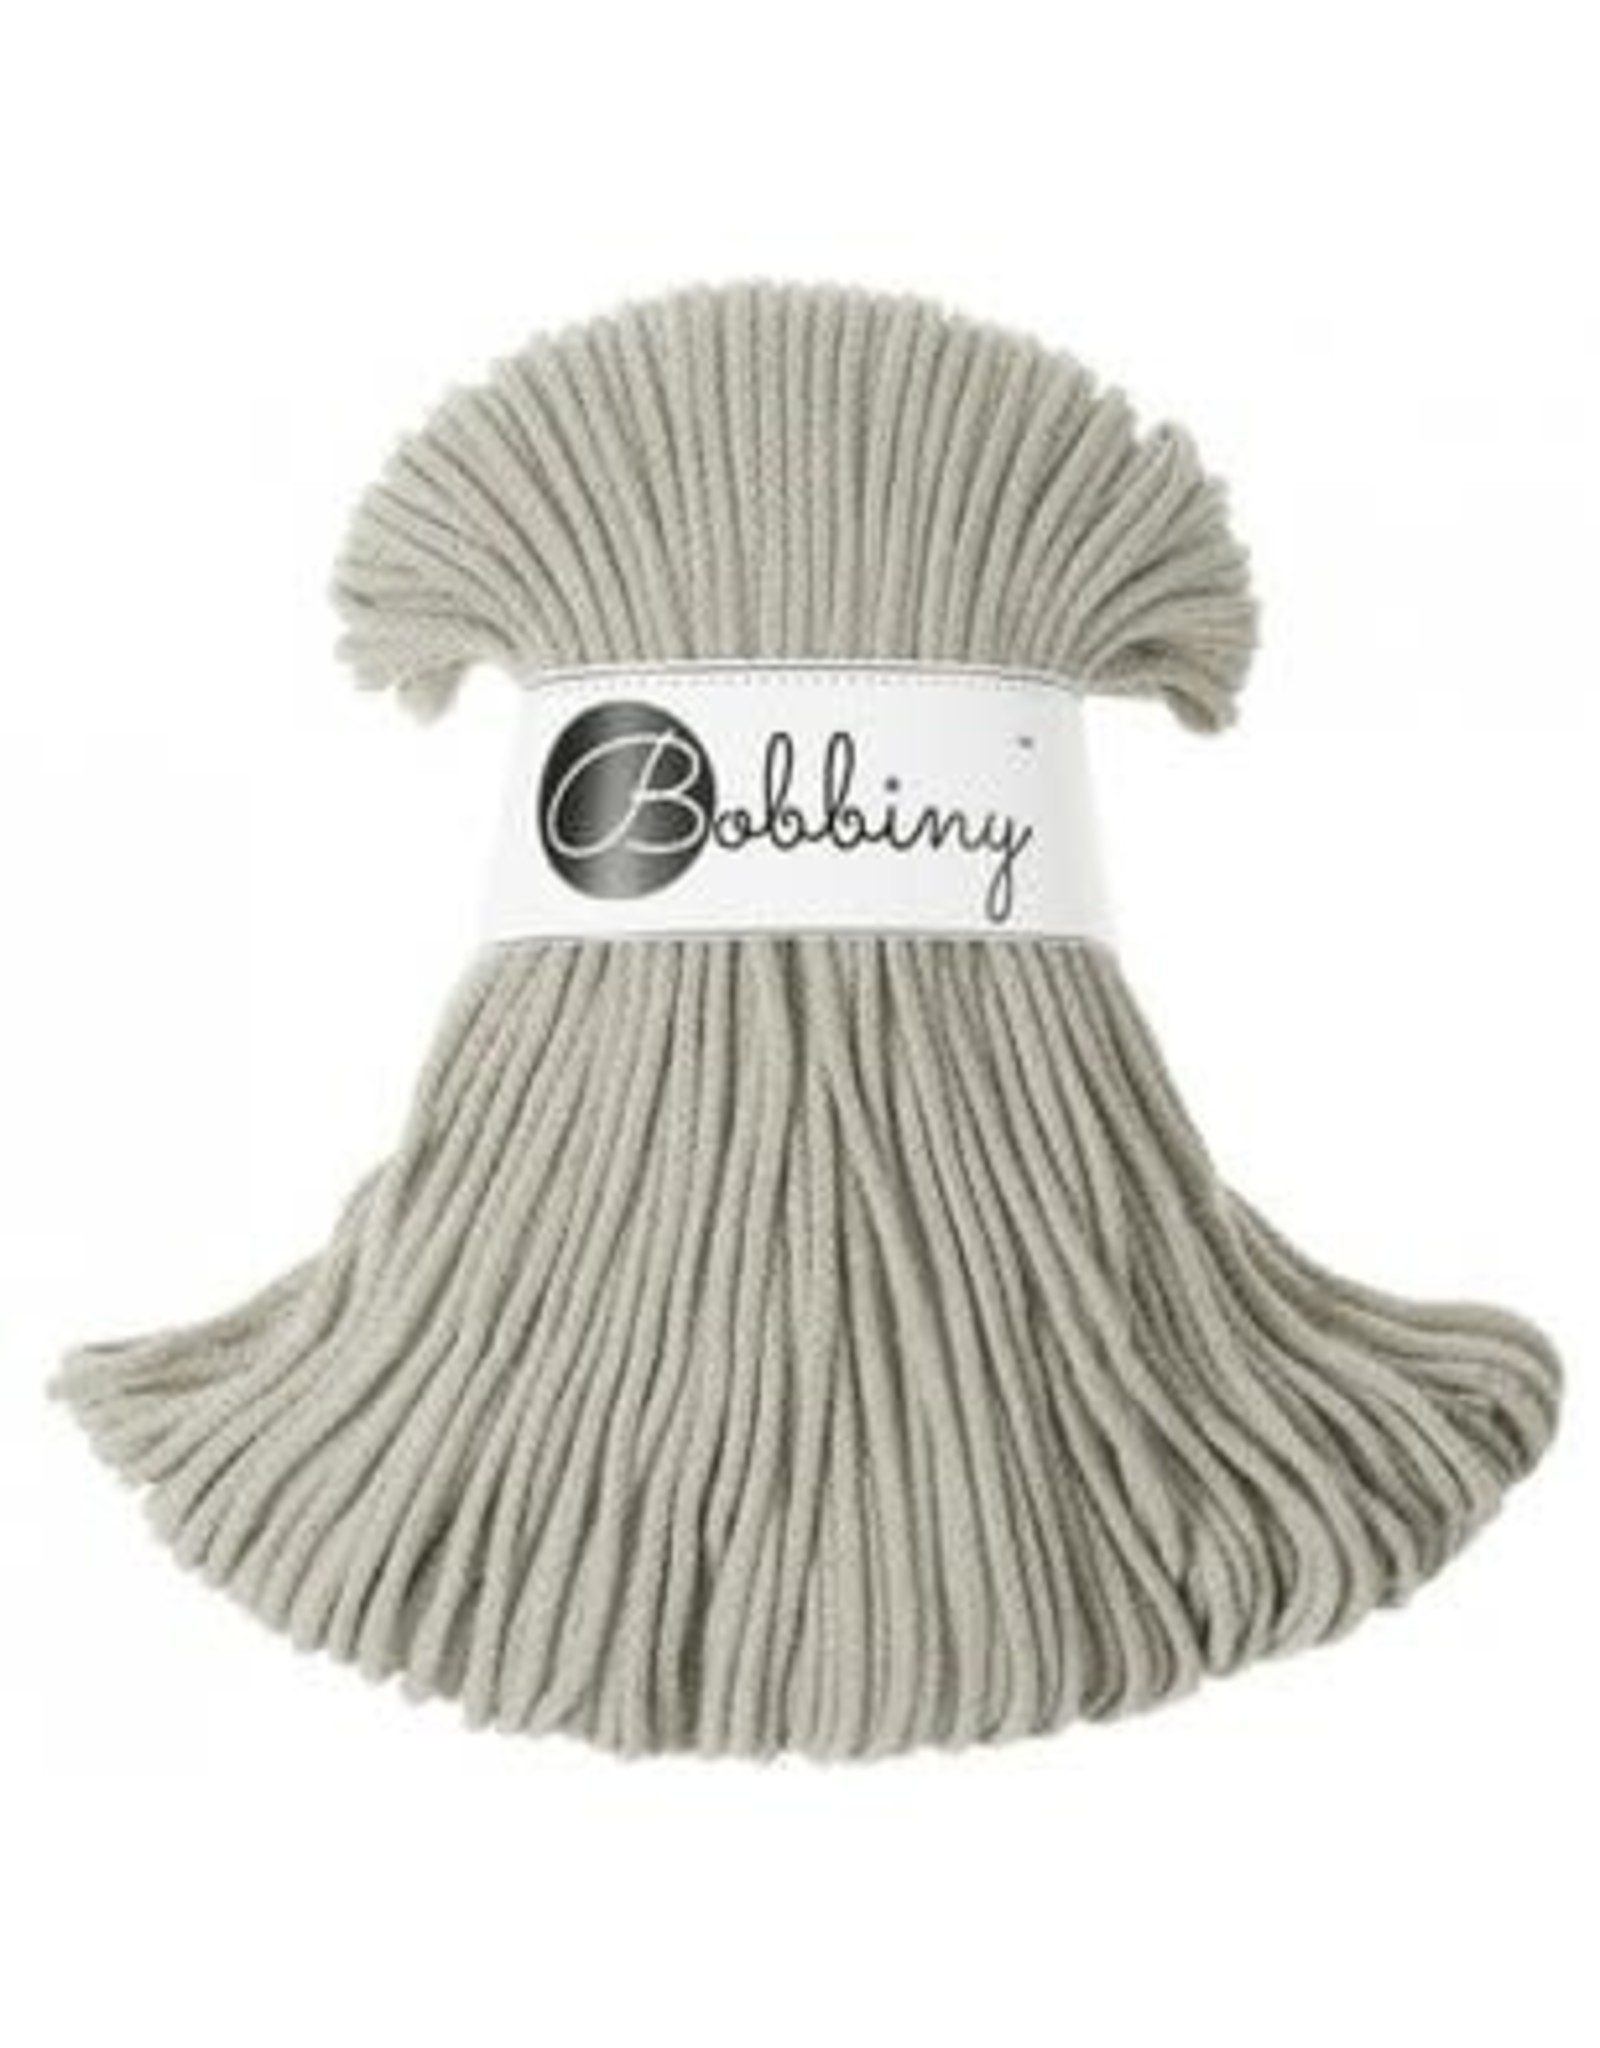 Bobbiny Bobbiny - Junior 3MM Beige